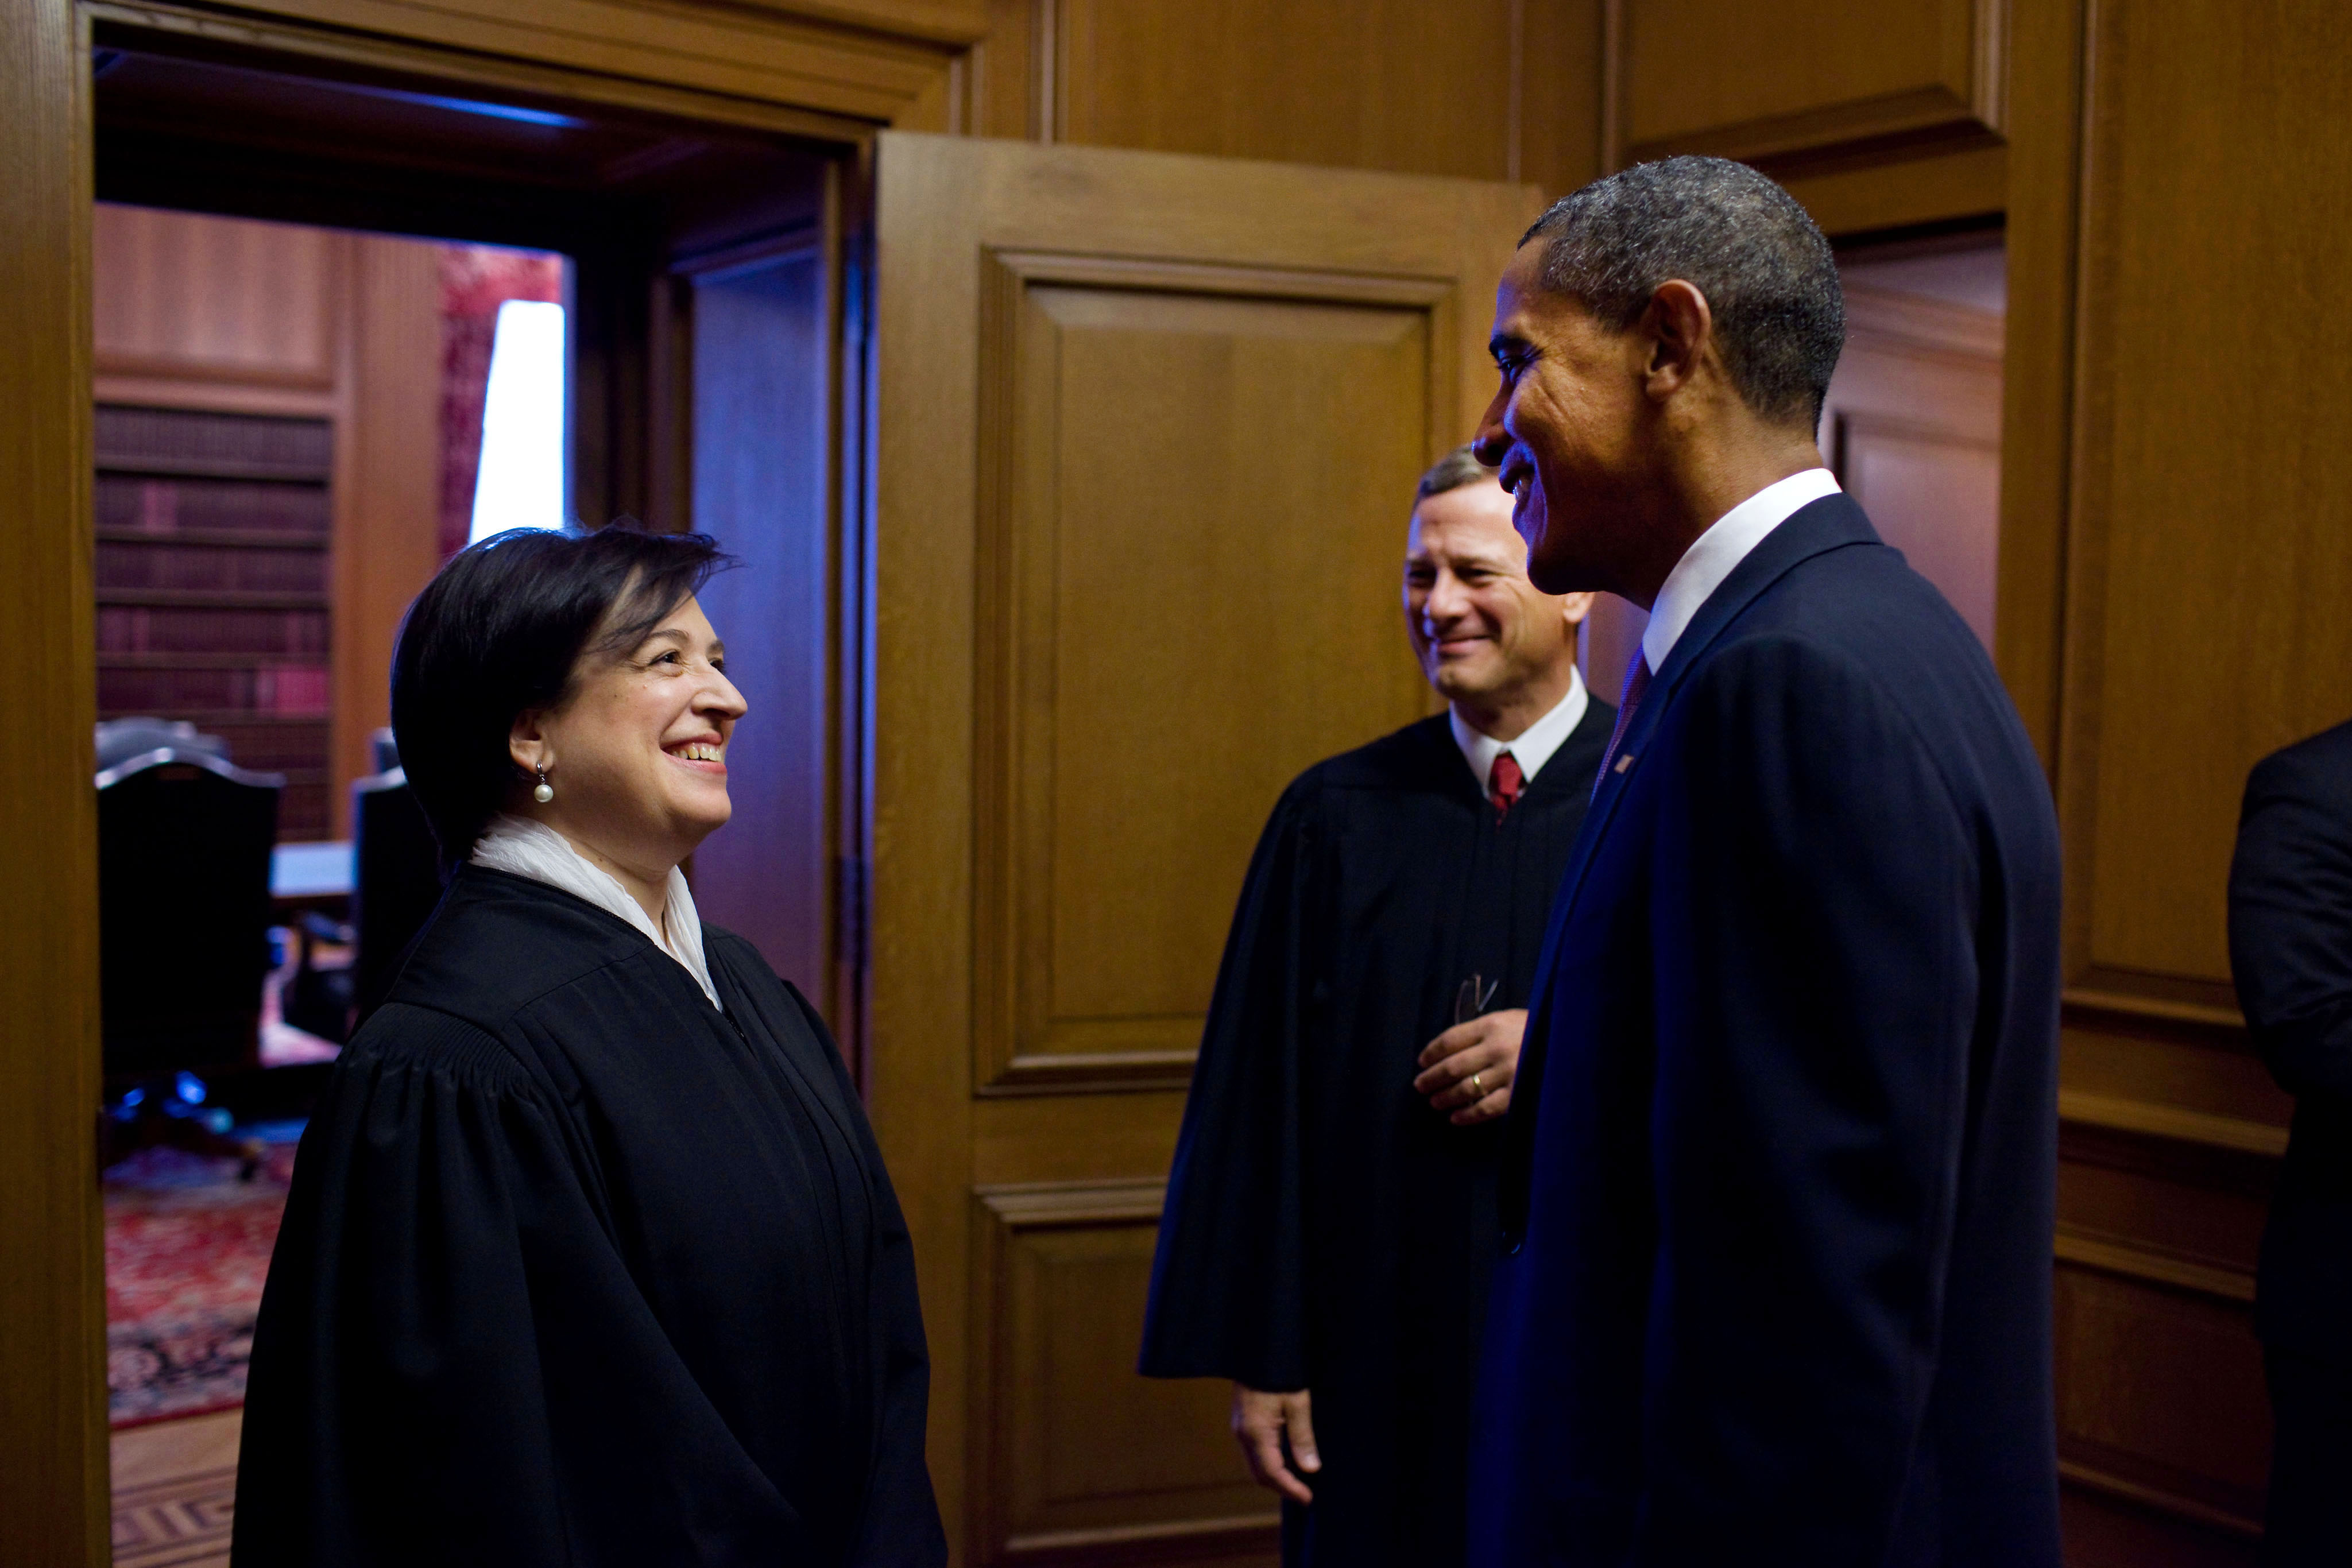 President Obama Greets Justice Elena Kagan and Chief Justice John Roberts Before Justice Kagan's Investiture Ceremony